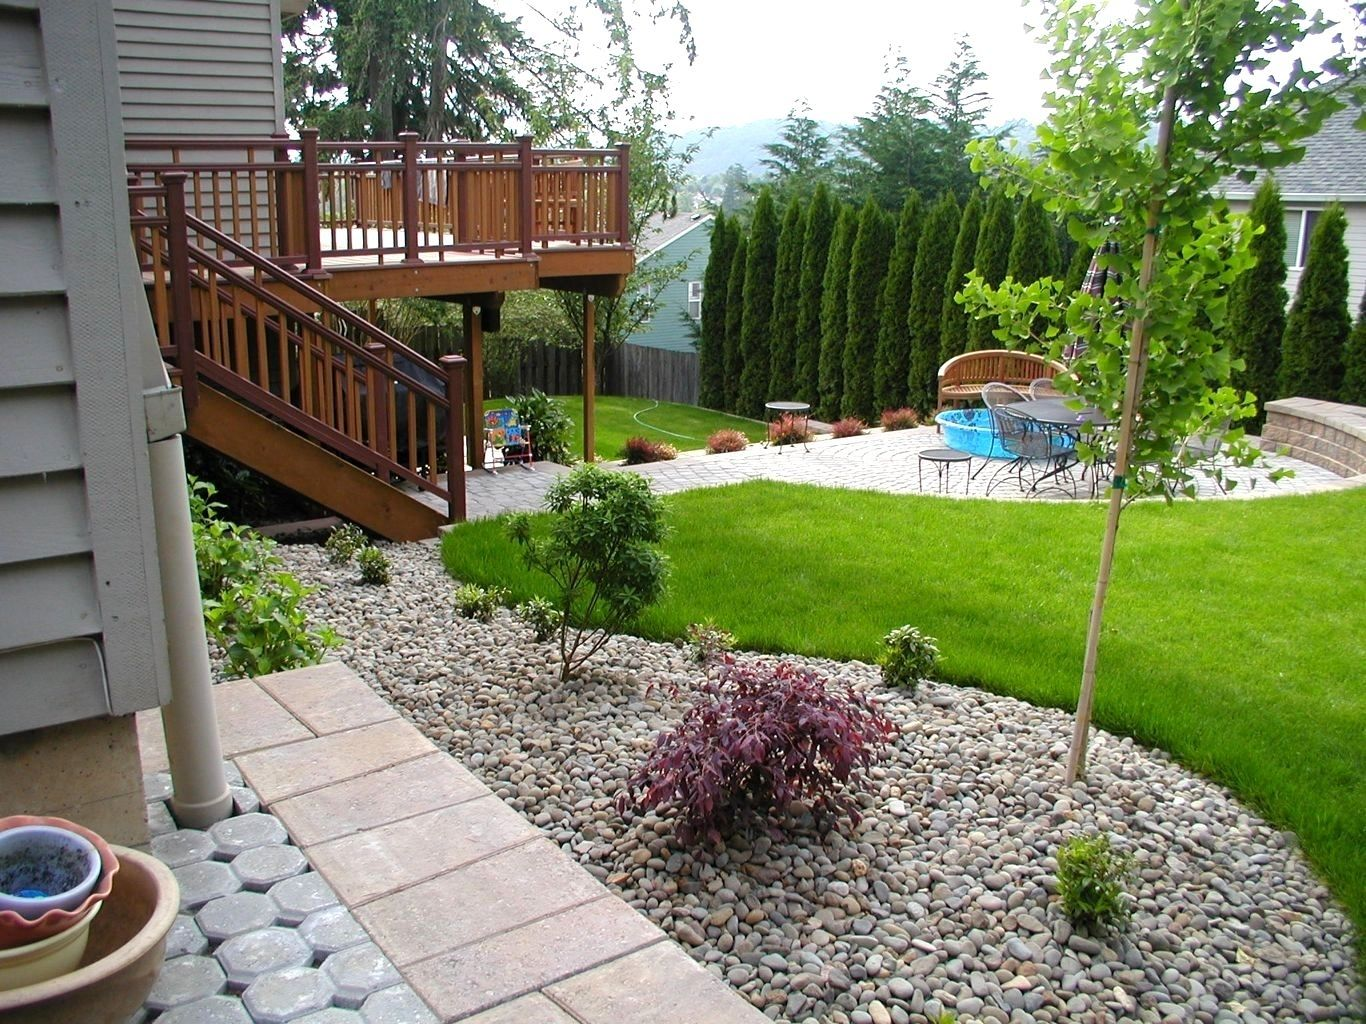 10 Houzz Garden Ideas Most Of The Awesome As Well As Attractive Small Backyard Landscaping Small Backyard Gardens Front Yard Landscaping Design